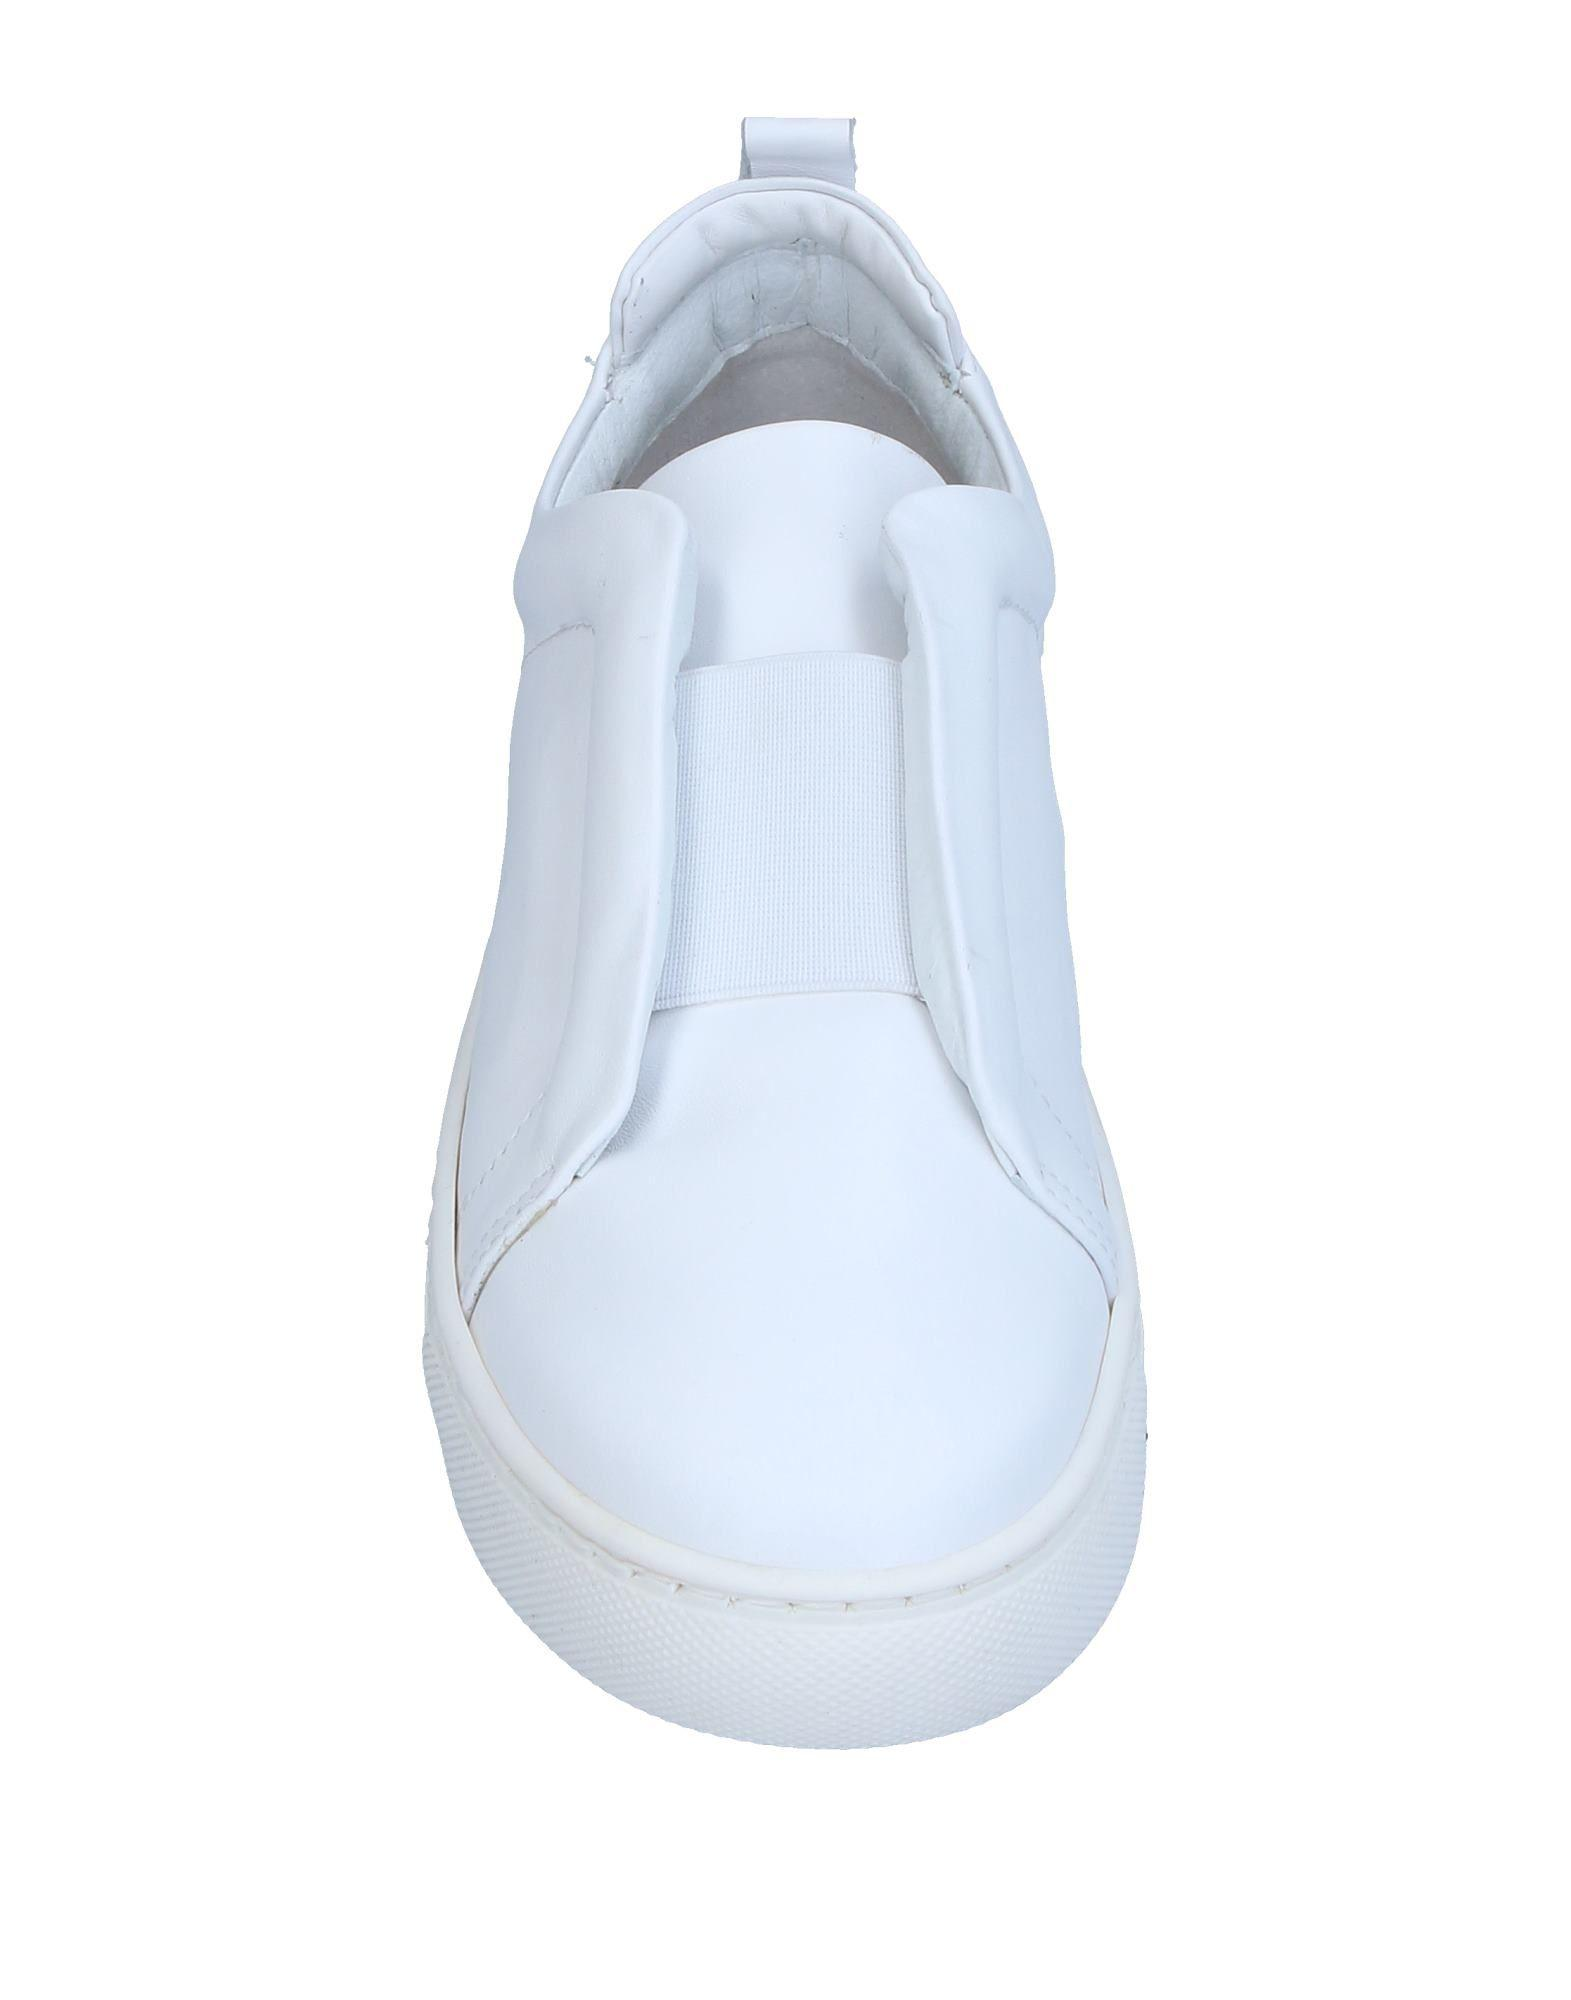 Very Cheap FOOTWEAR - Low-tops & sneakers Lea-Gu Clearance Best Prices Perfect Cheap Classic Discount Genuine ZZBUv42lkJ